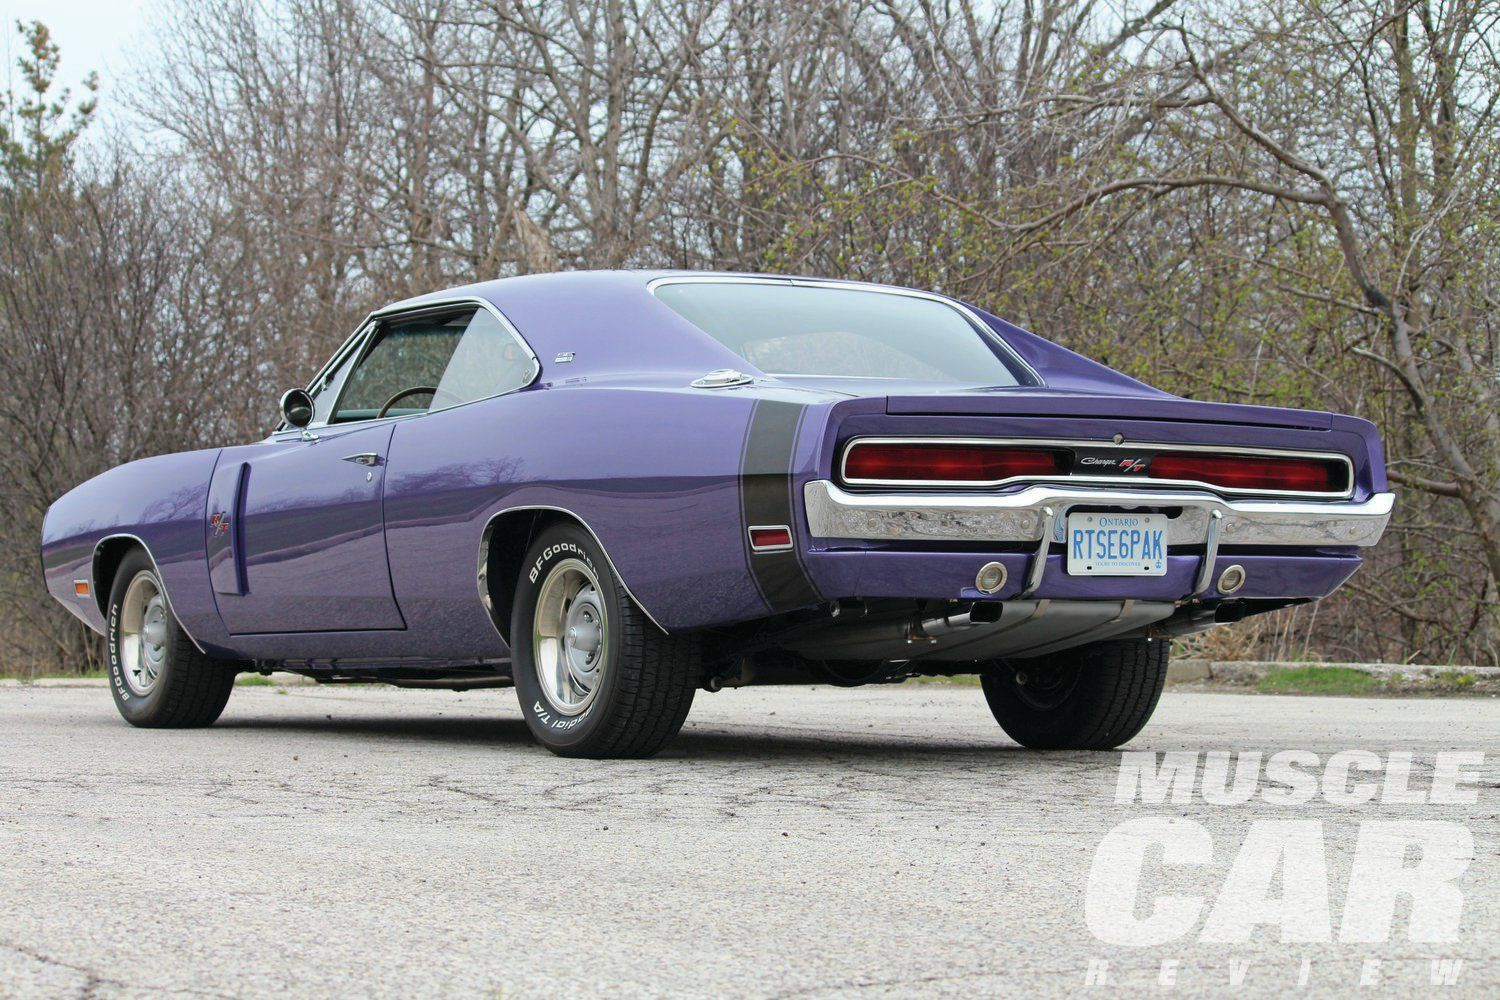 Muscle Car Rear End 1970 Dodge Charger Rt Rear End American